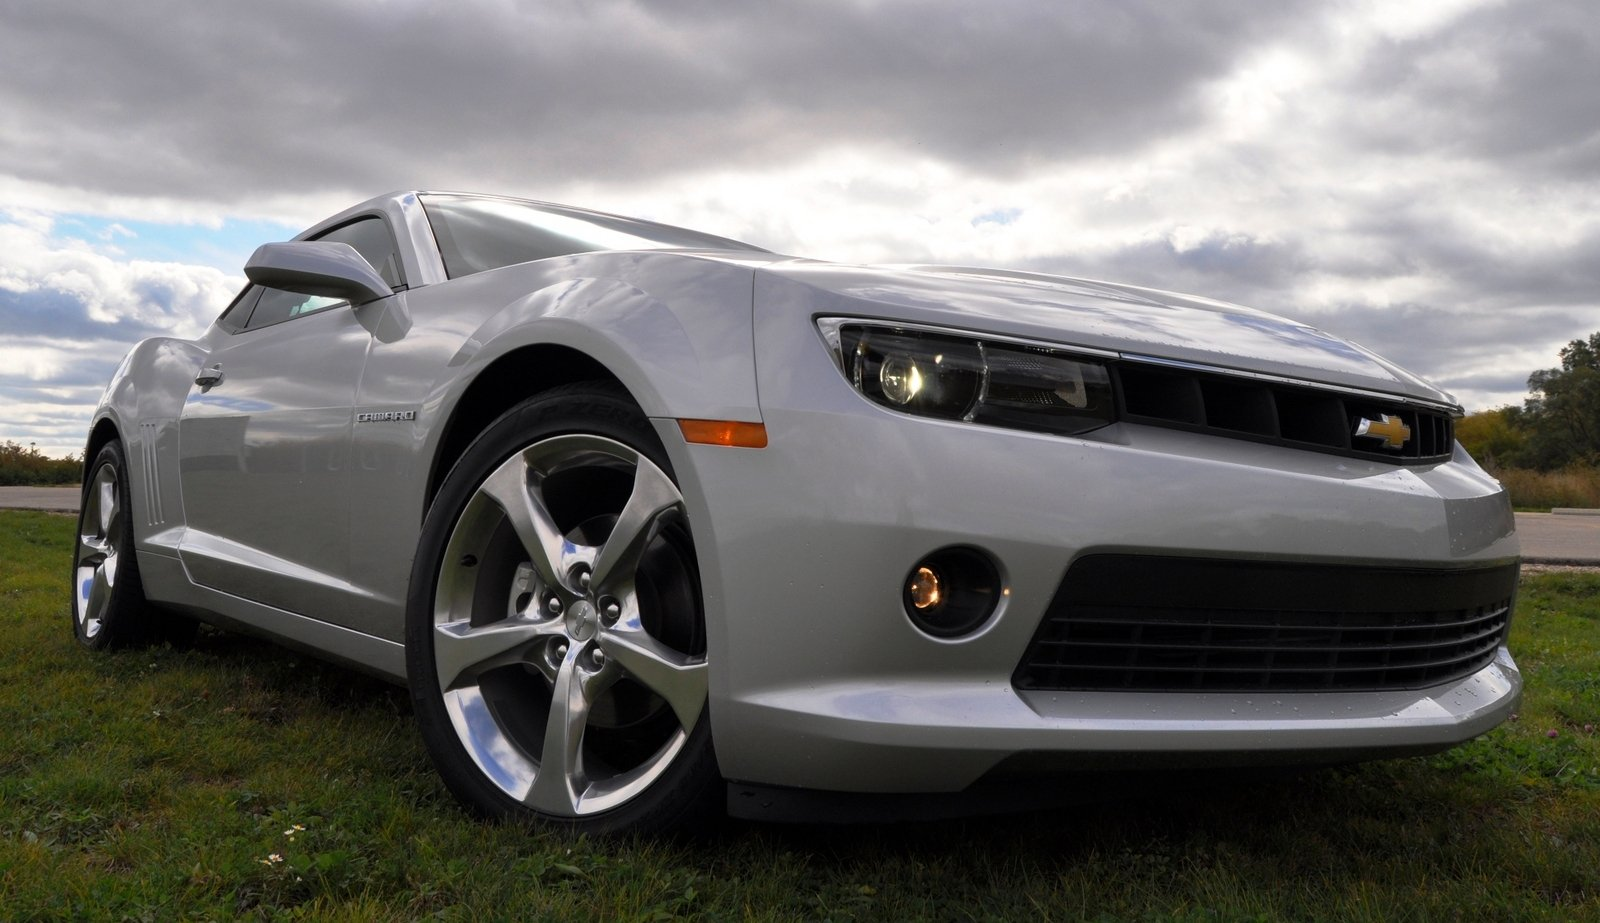 2014 Chevrolet Camaro RS Review - Top Speed